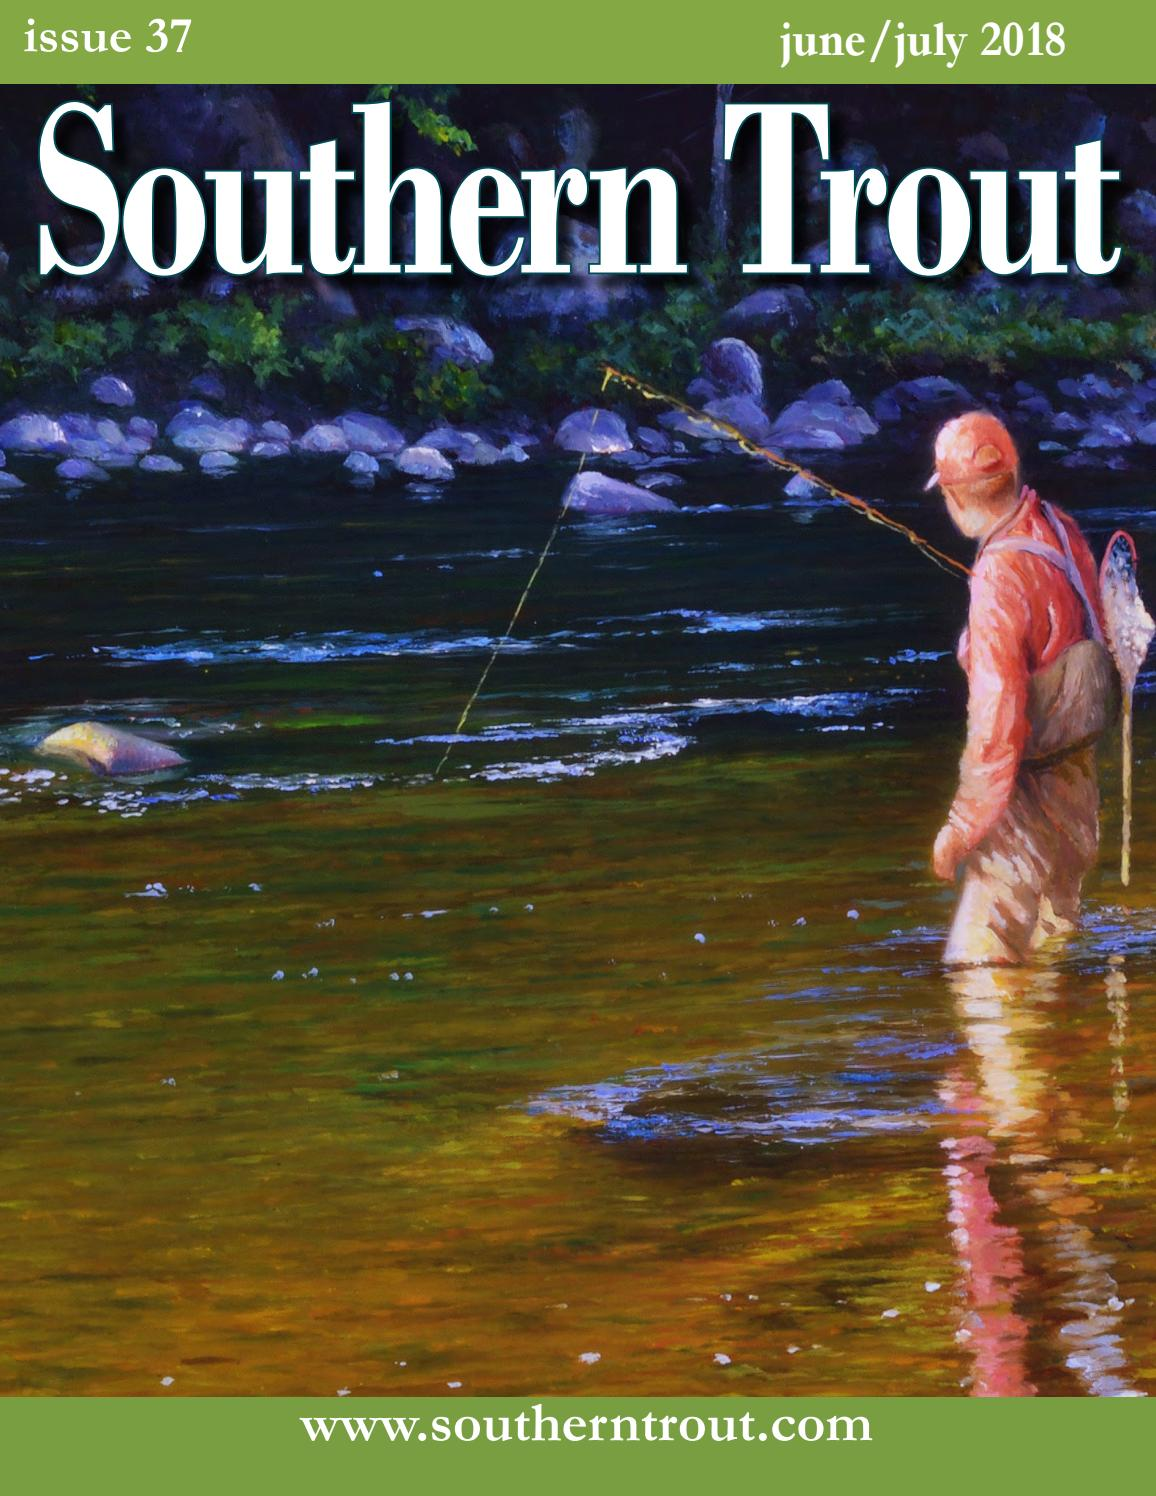 Southern Trout Issue 37 June July 2018 by Southern Unlimited